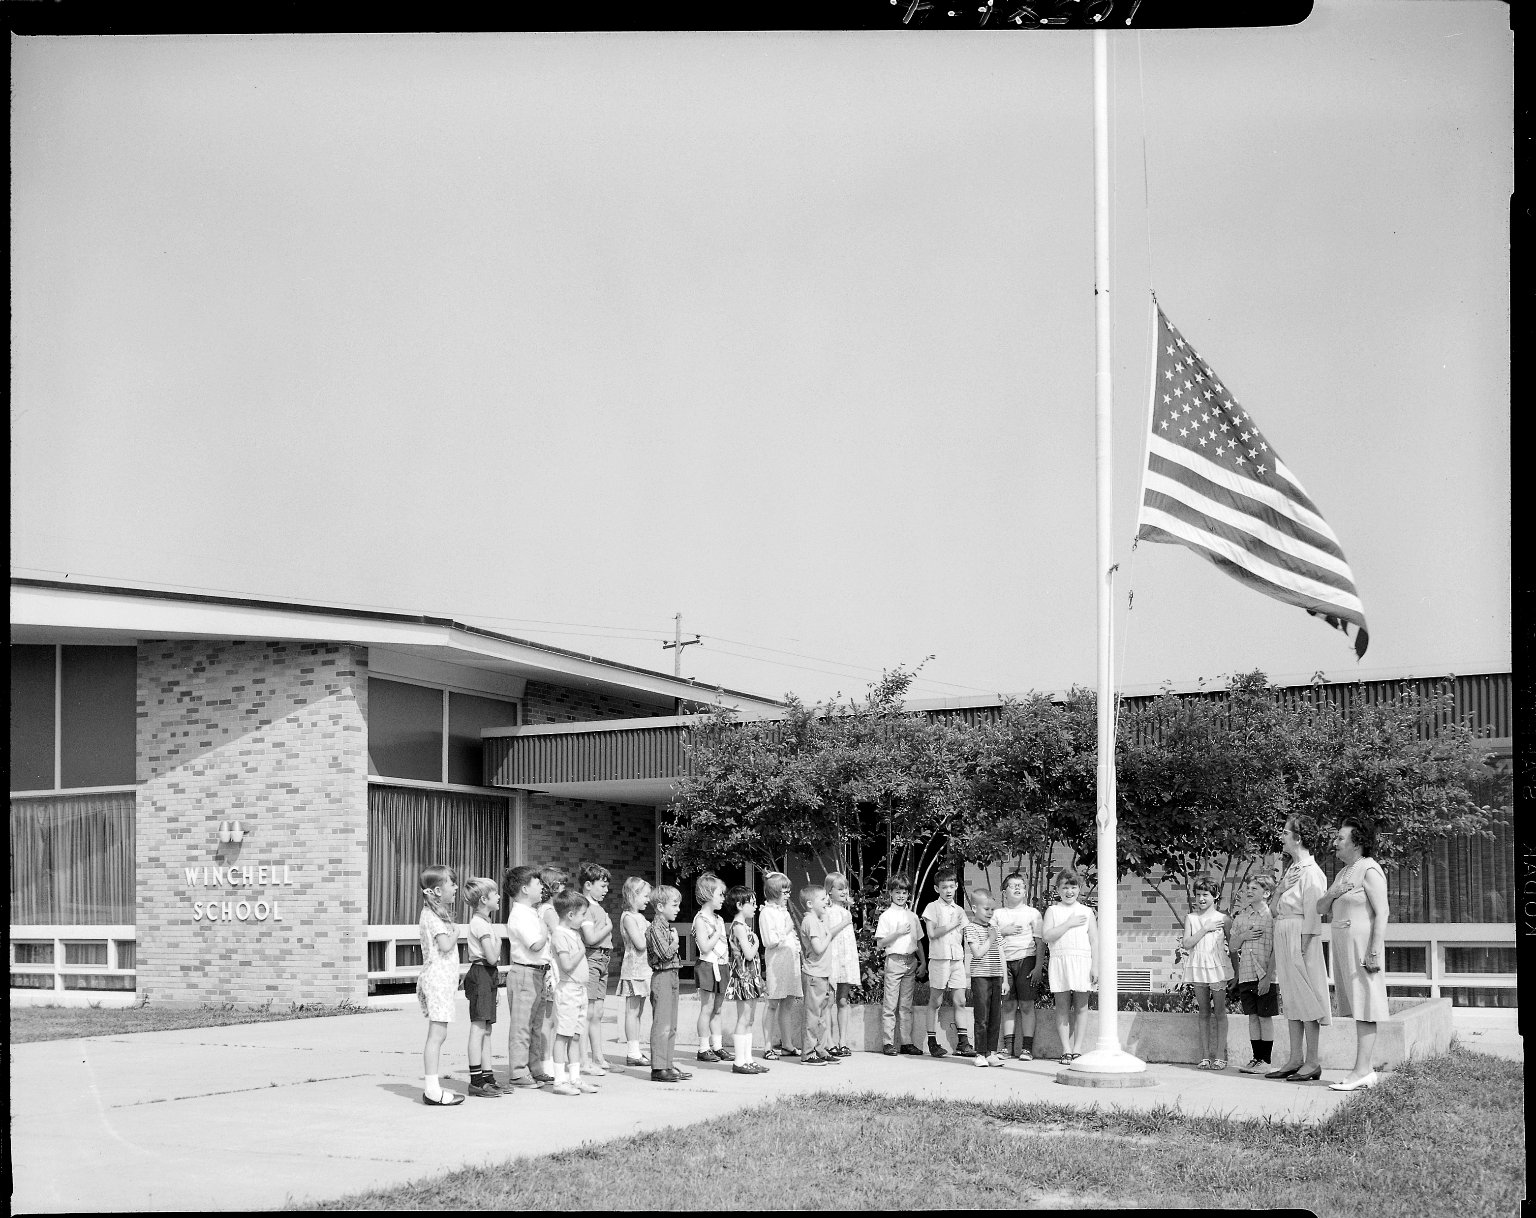 Winchell School, Mrs. Mildred Borton's classroom with U.S. flag in front of school